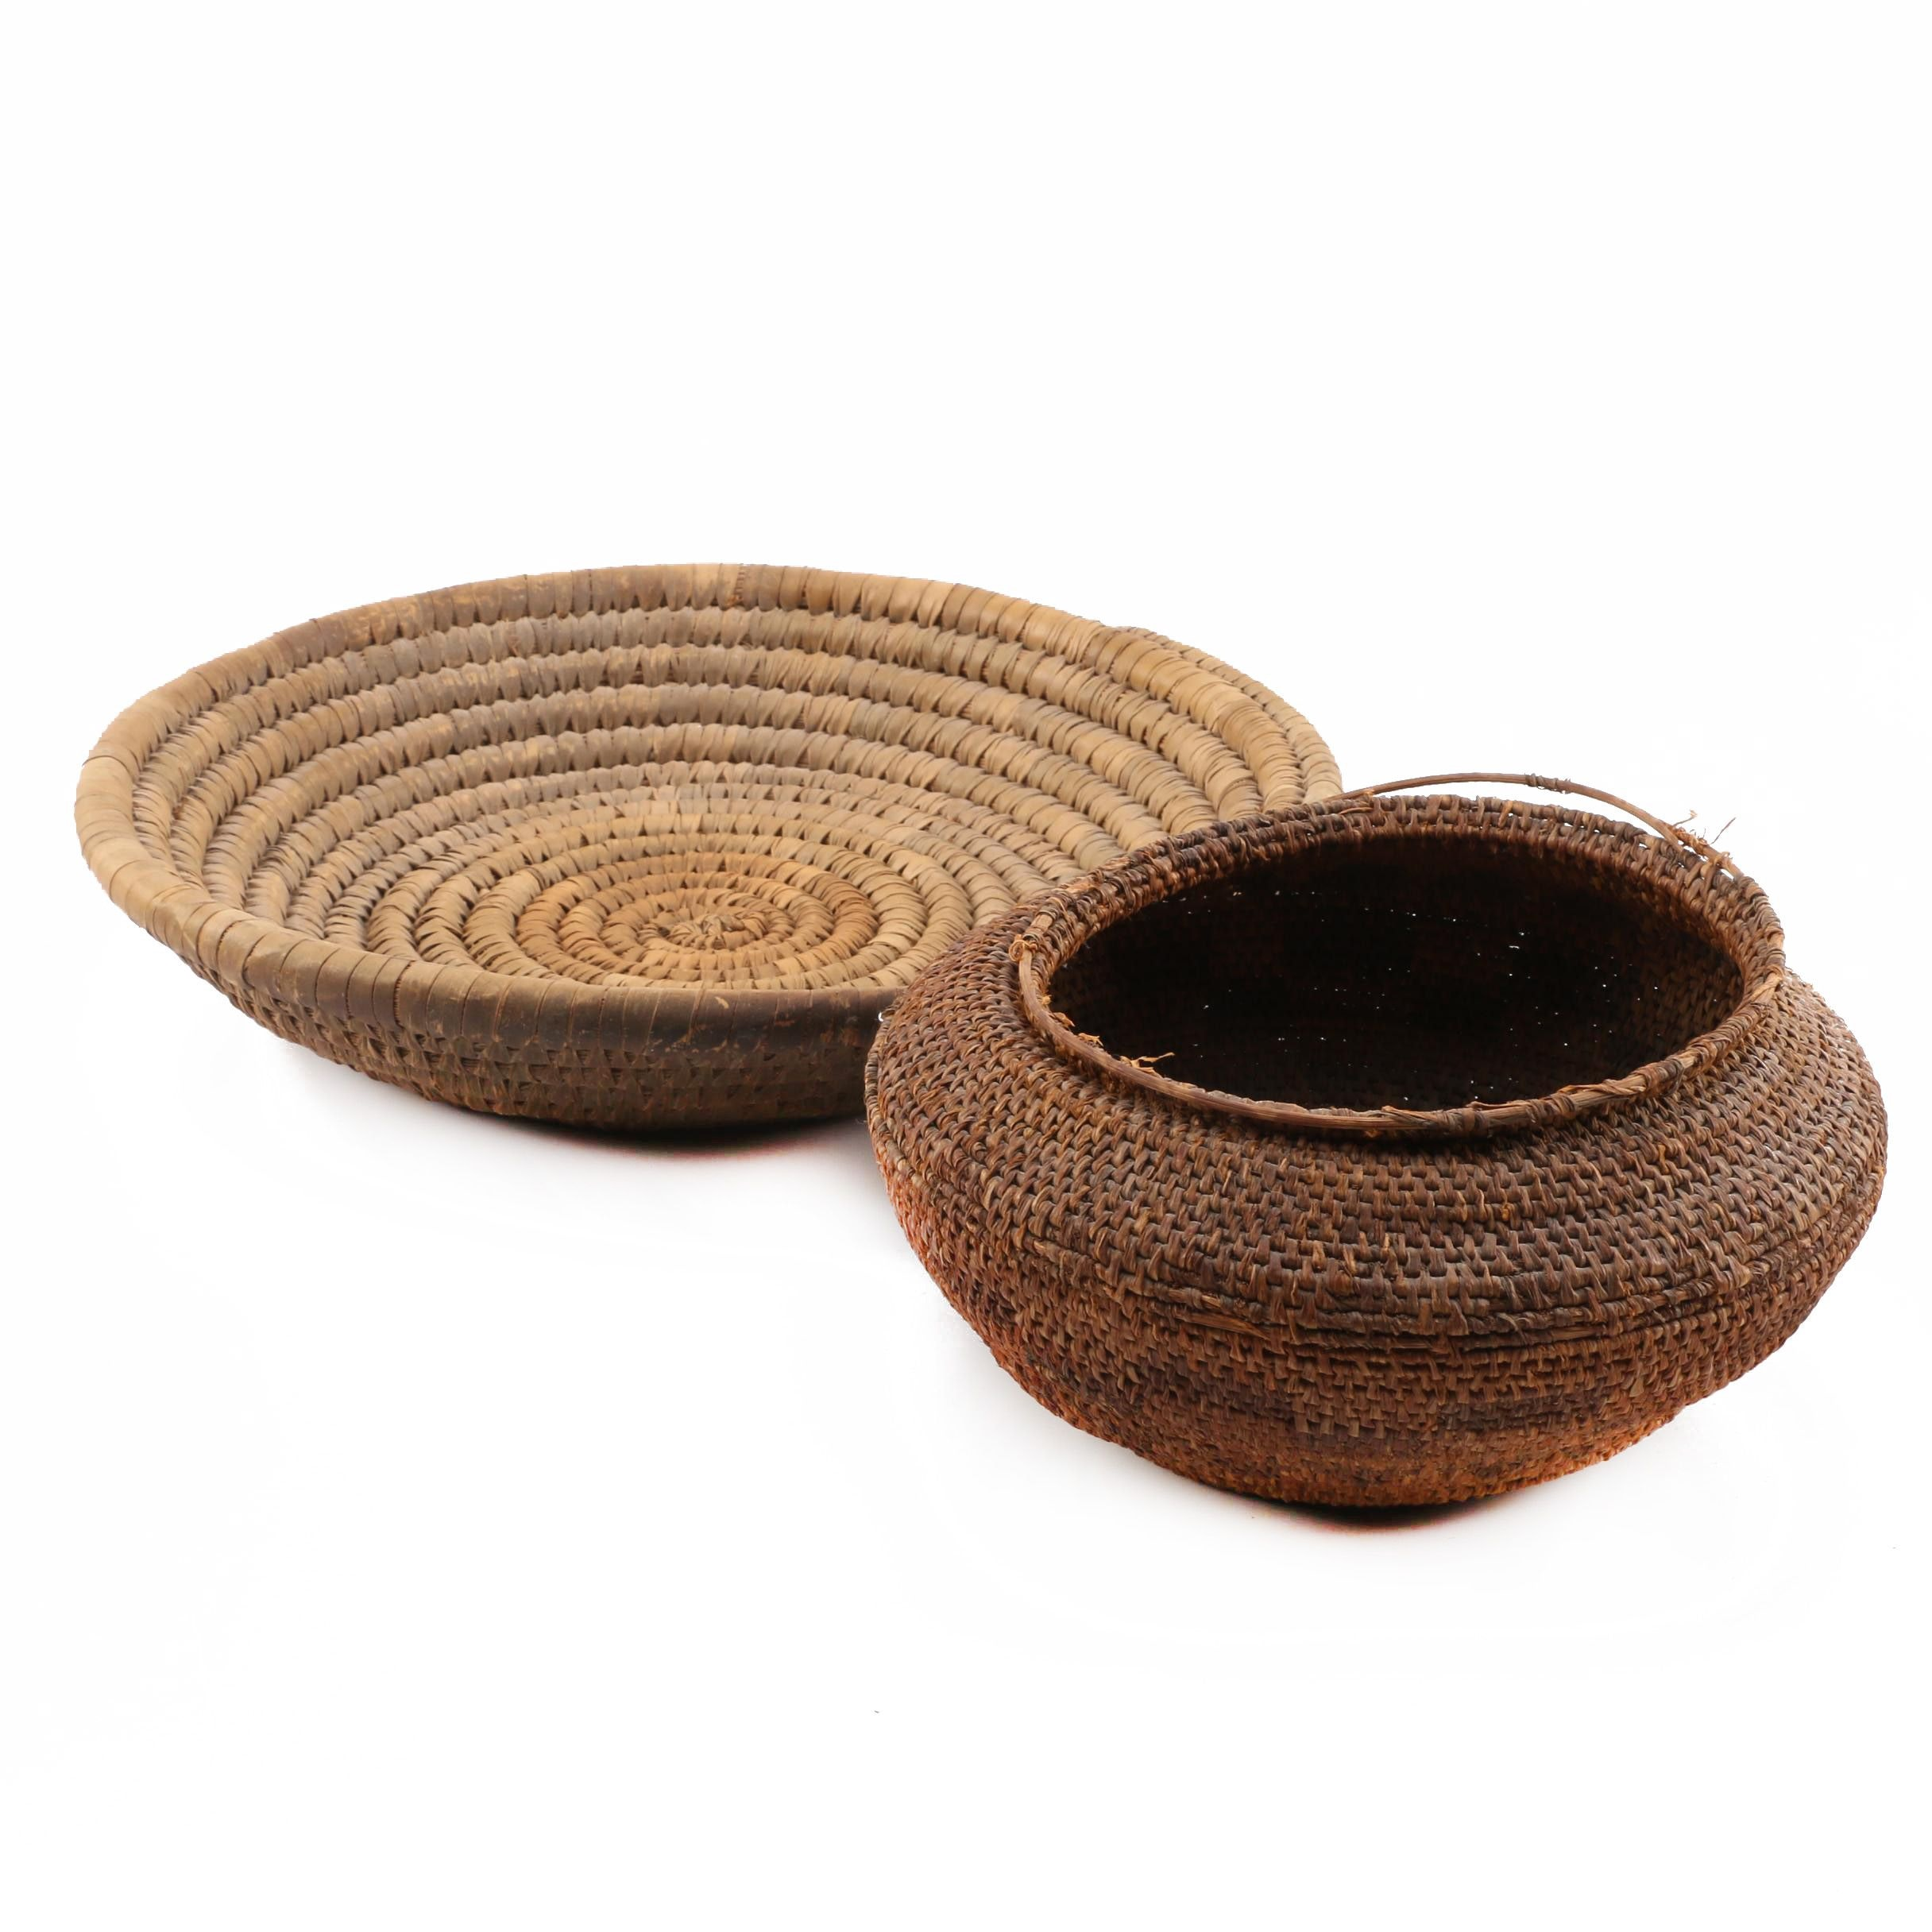 Native American Style Coiled Baskets